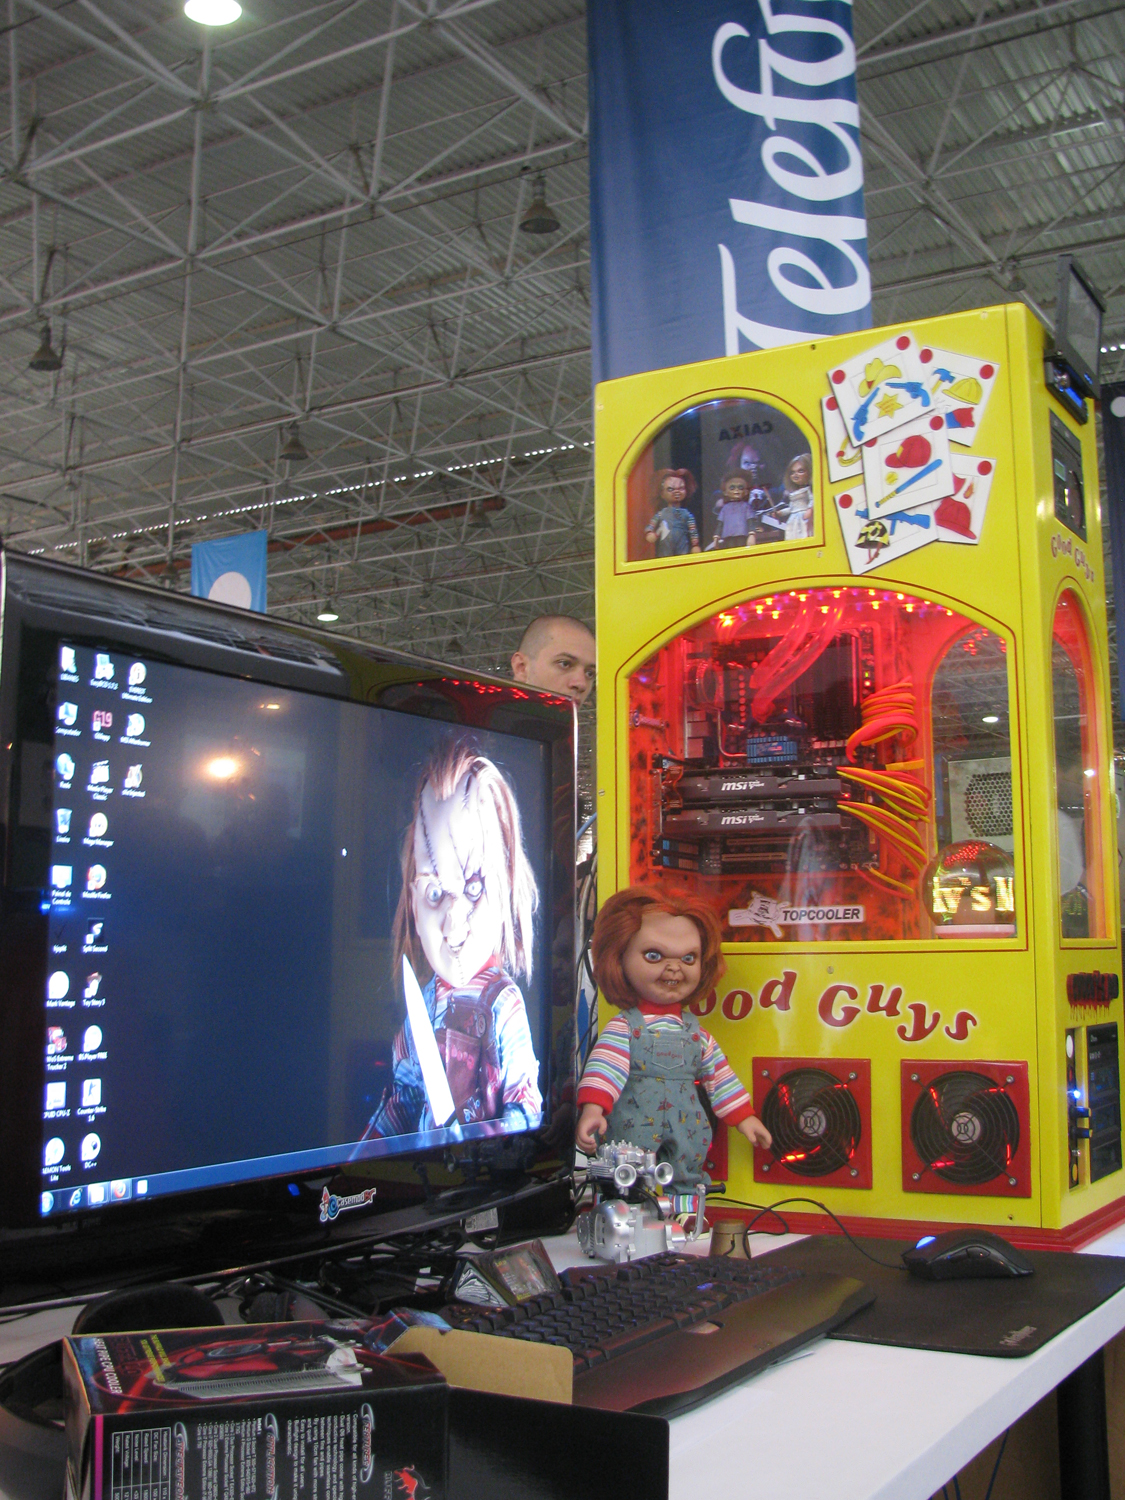 Casemod do Brinquedo Assassino na Campus Party 2011 (Foto: Pedro Cardoso / TechTudo)